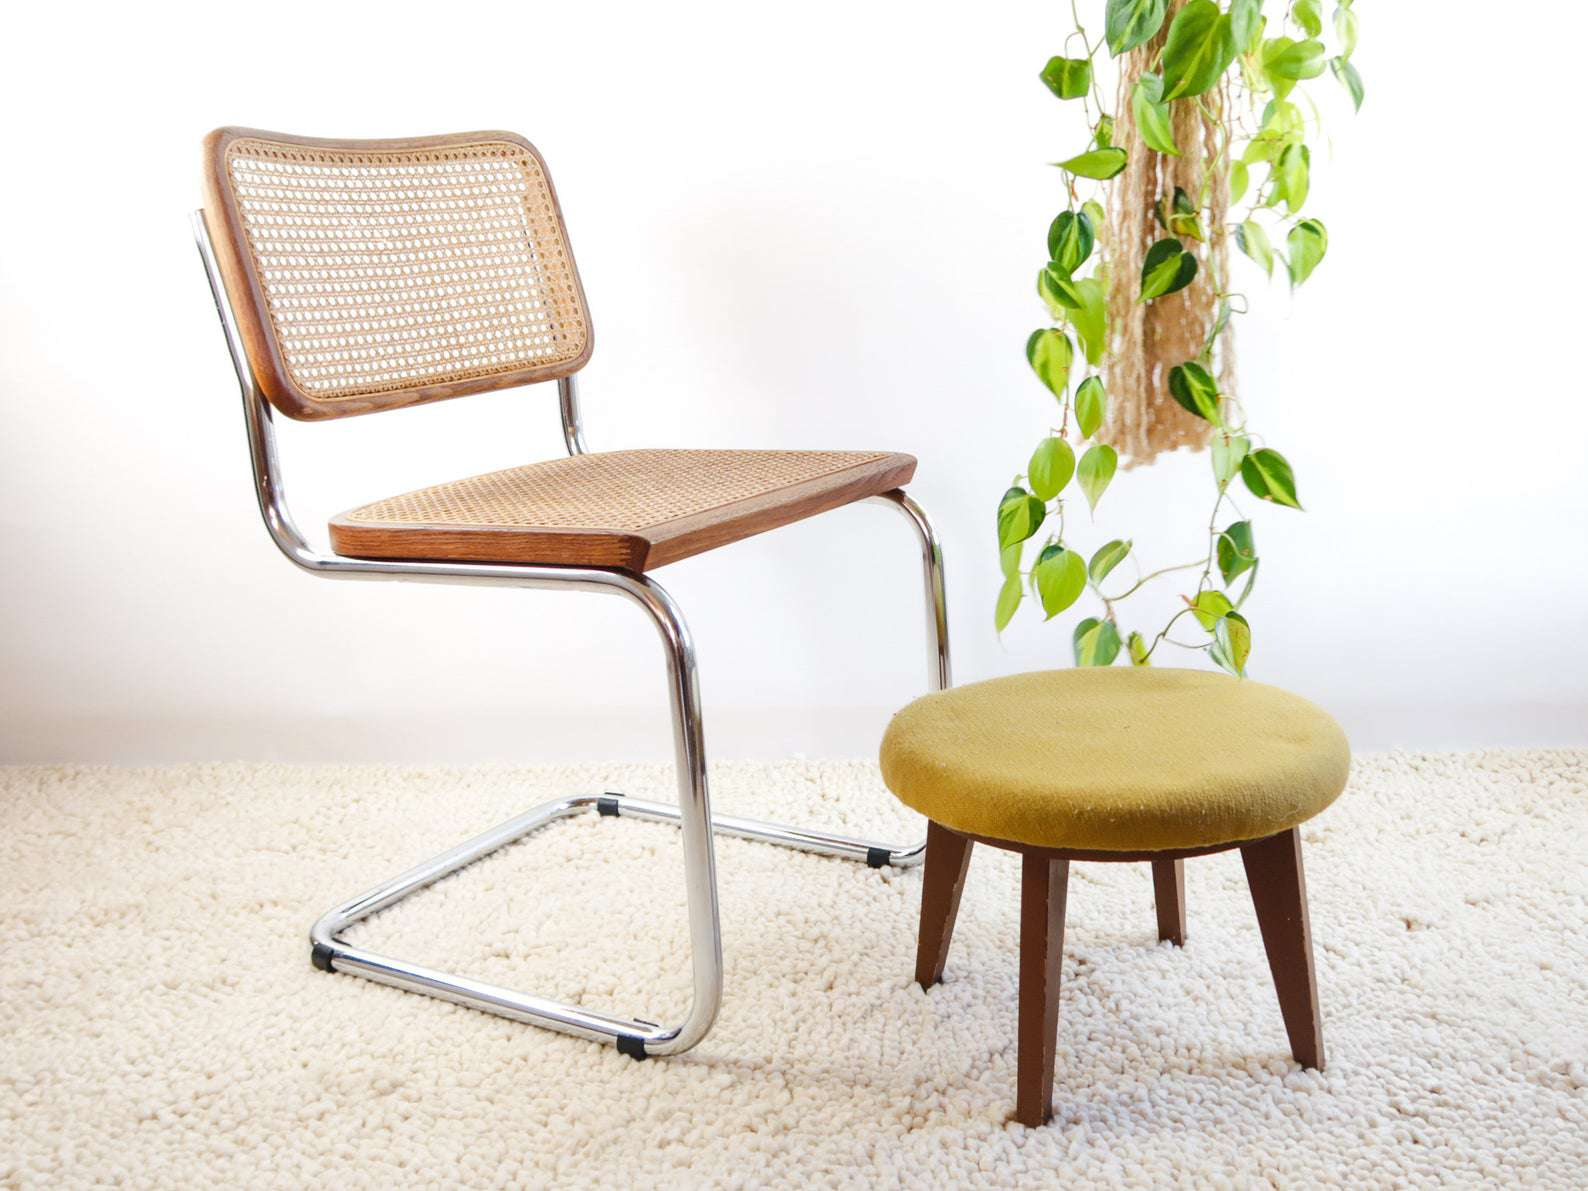 Reshaped Spaces Cesca Chair